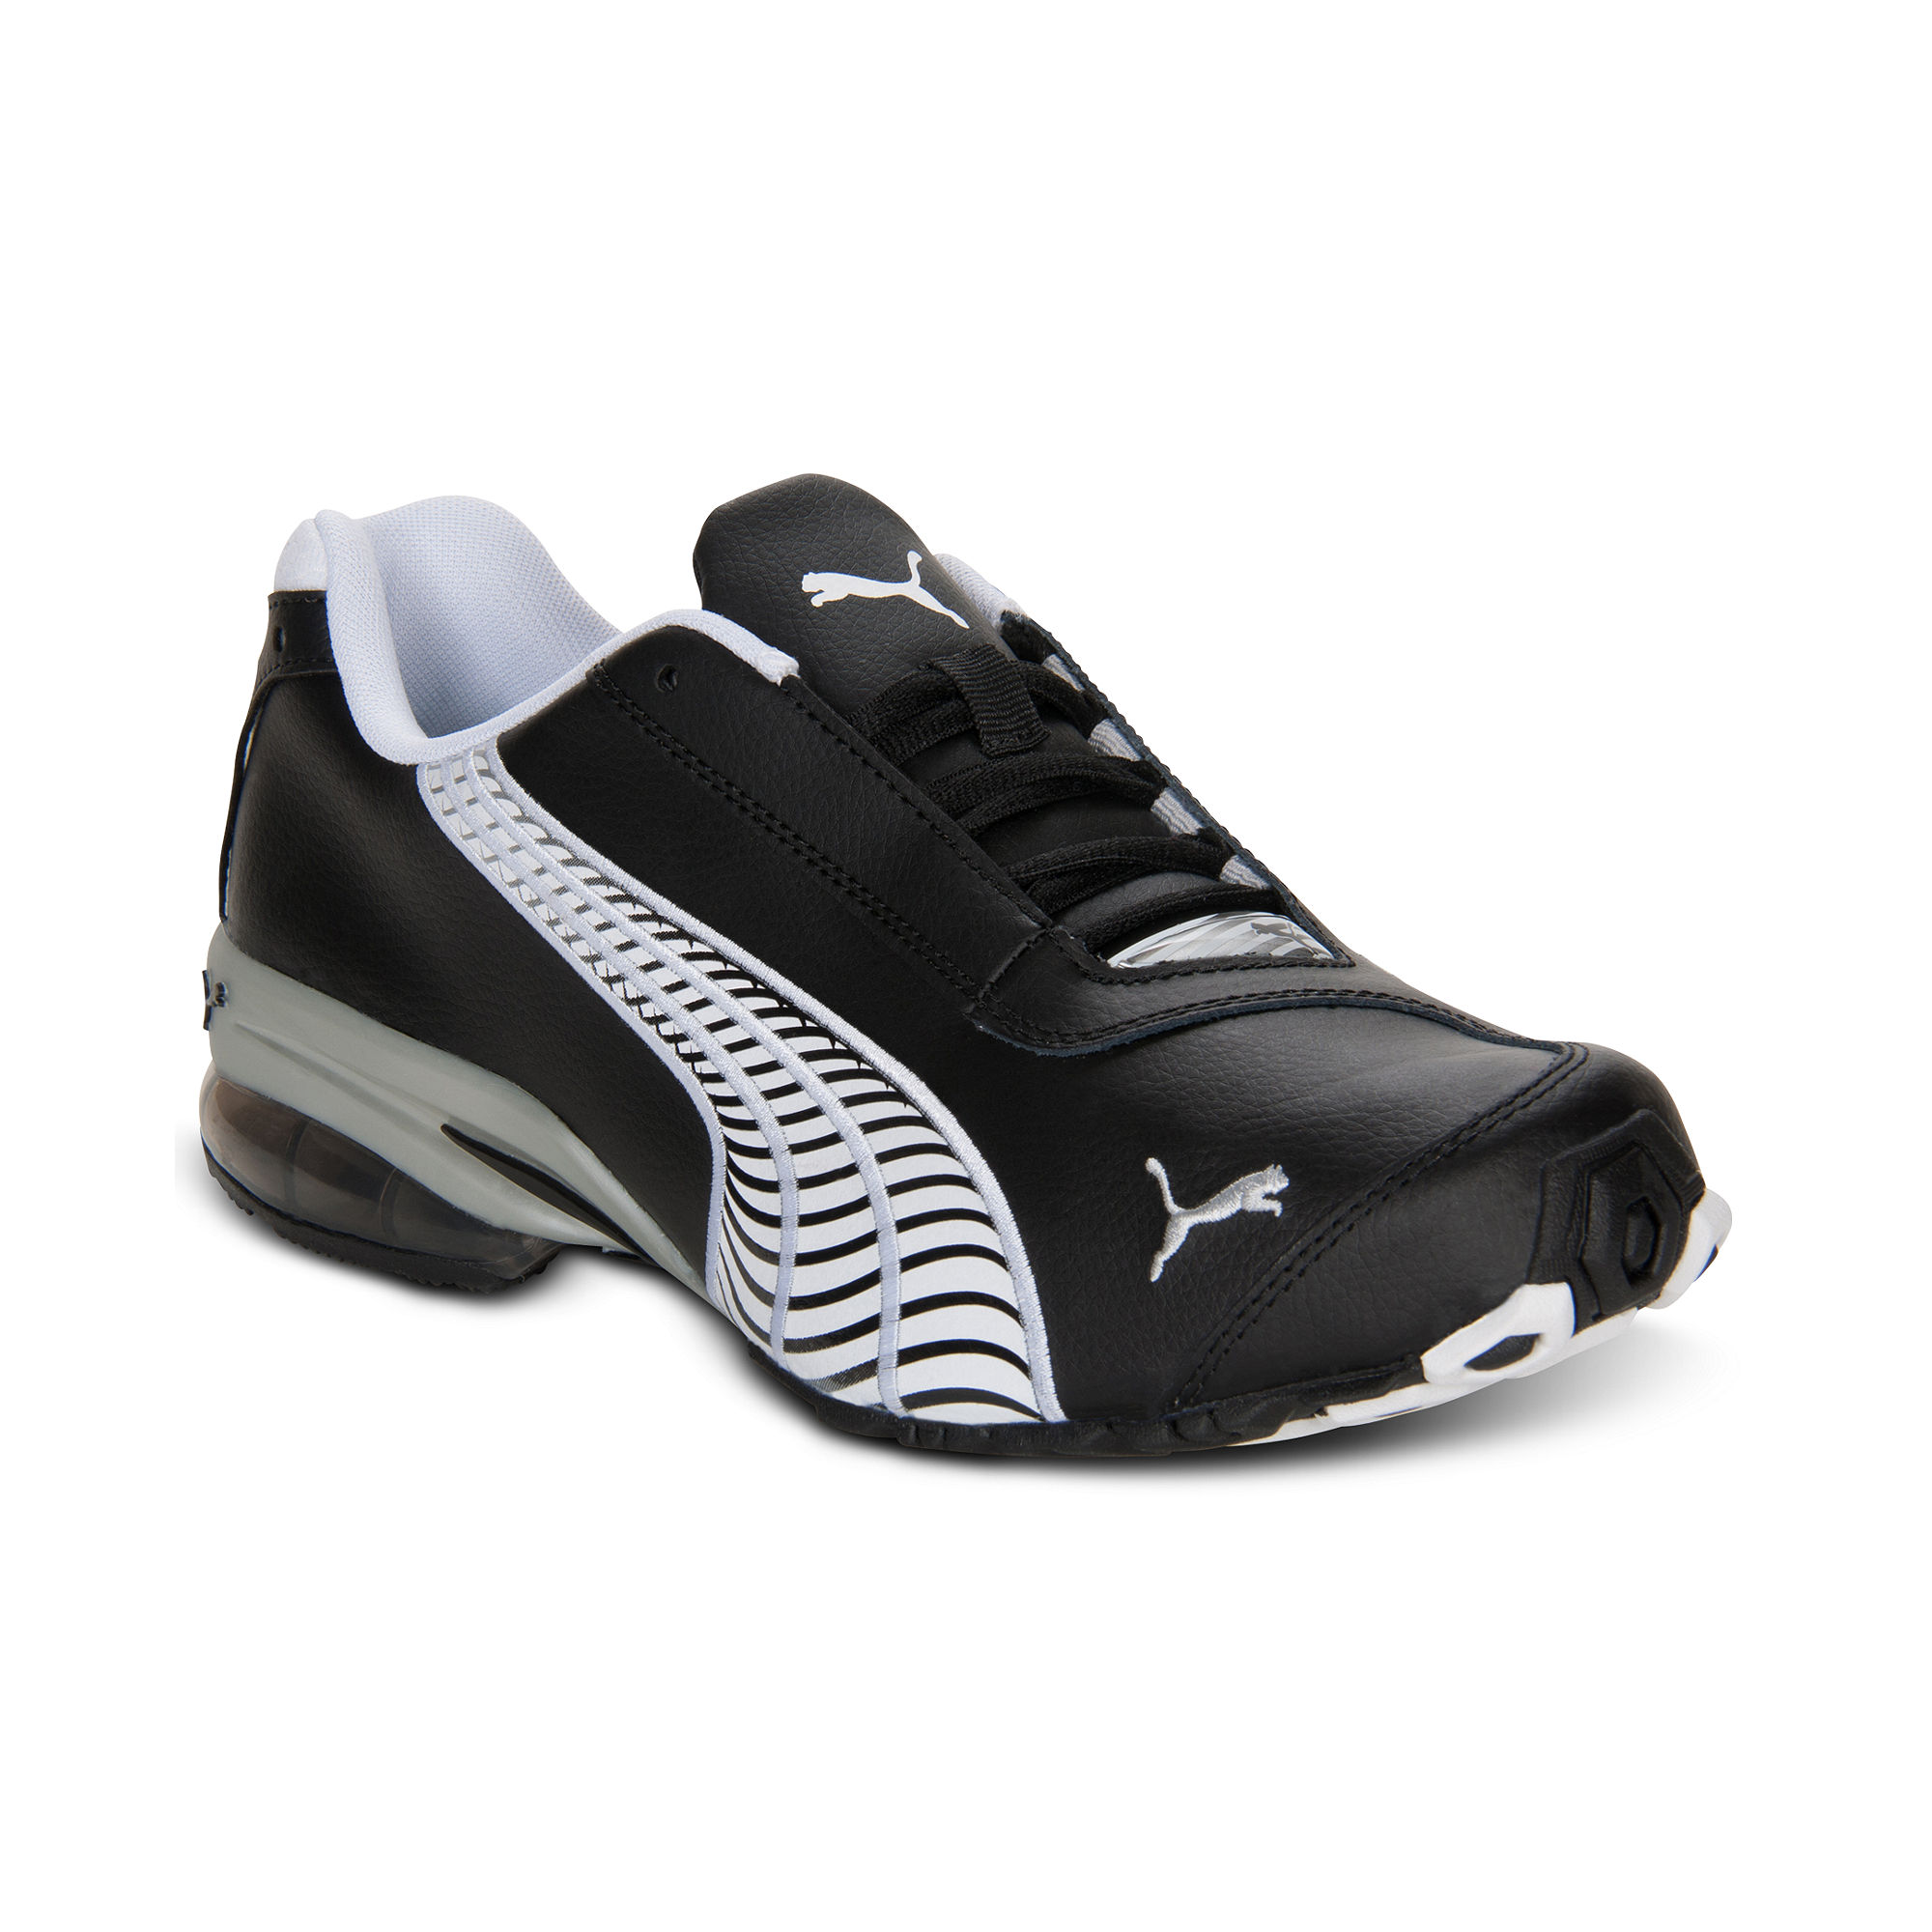 Puma Black Silver Shoes